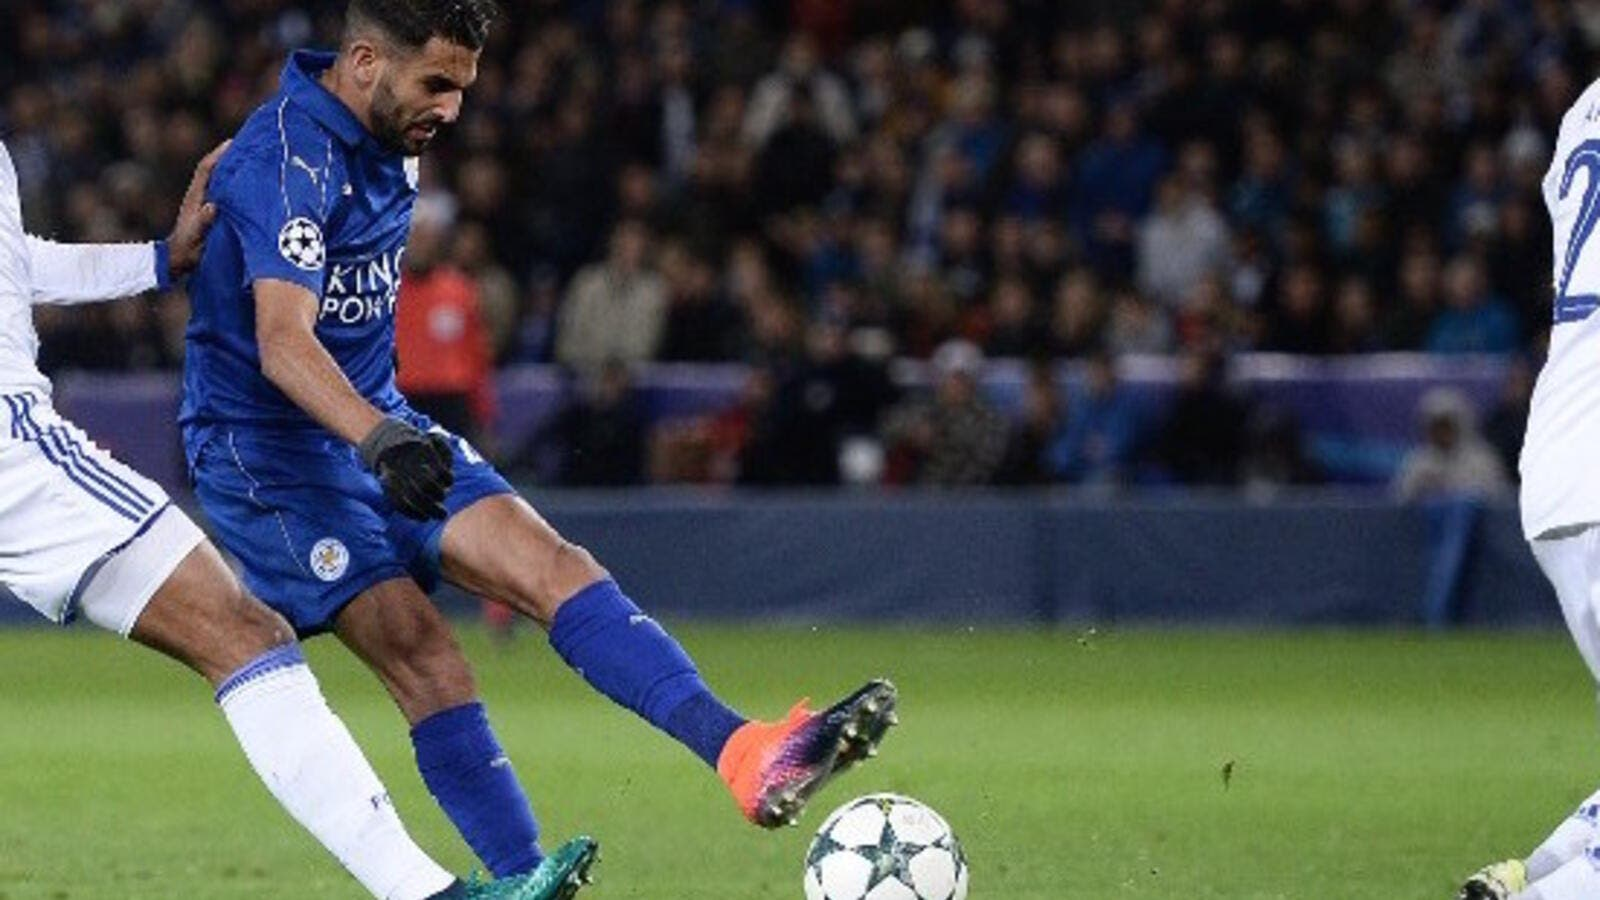 The Leicester winger is looking to make a summer move, but is yet to receive a formal approach as he waits for the window of opportunity to re-open